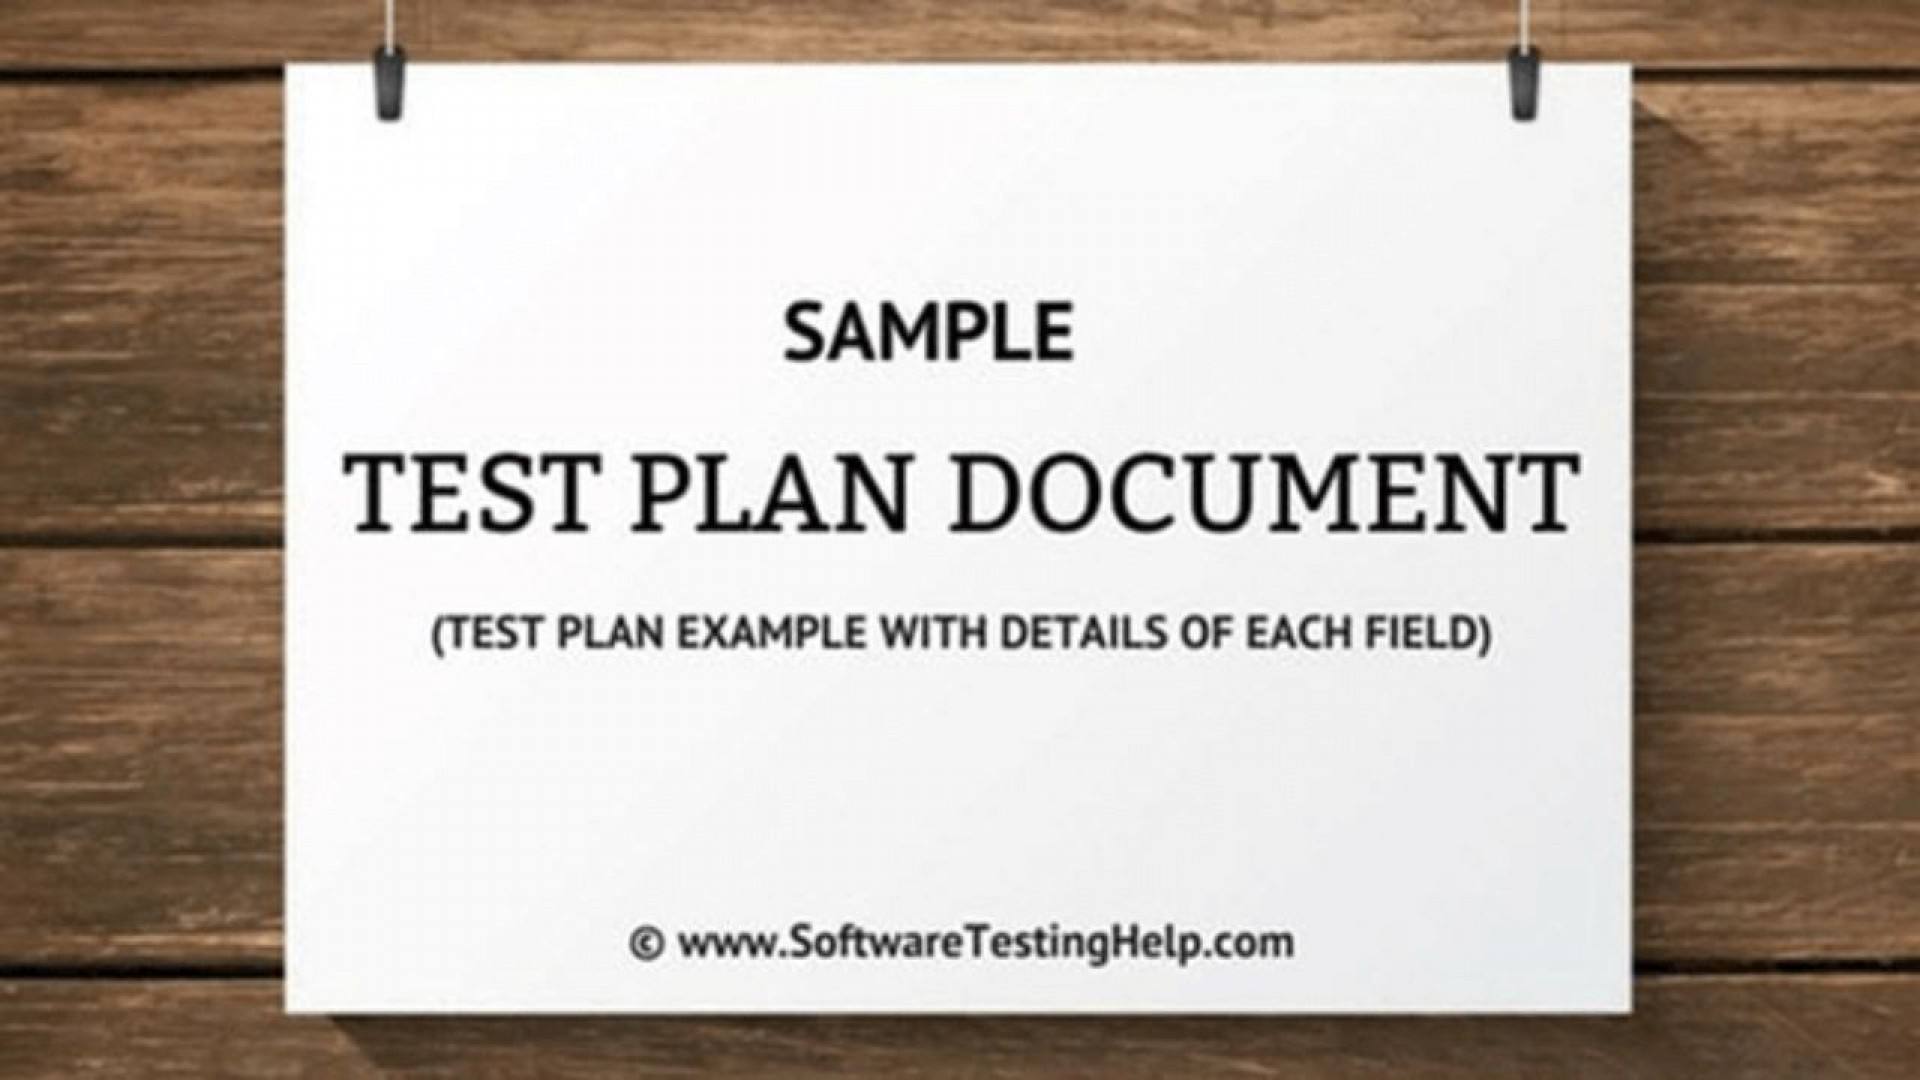 008 Fascinating Agile Test Plan Template Highest Clarity  Word Example Document1920